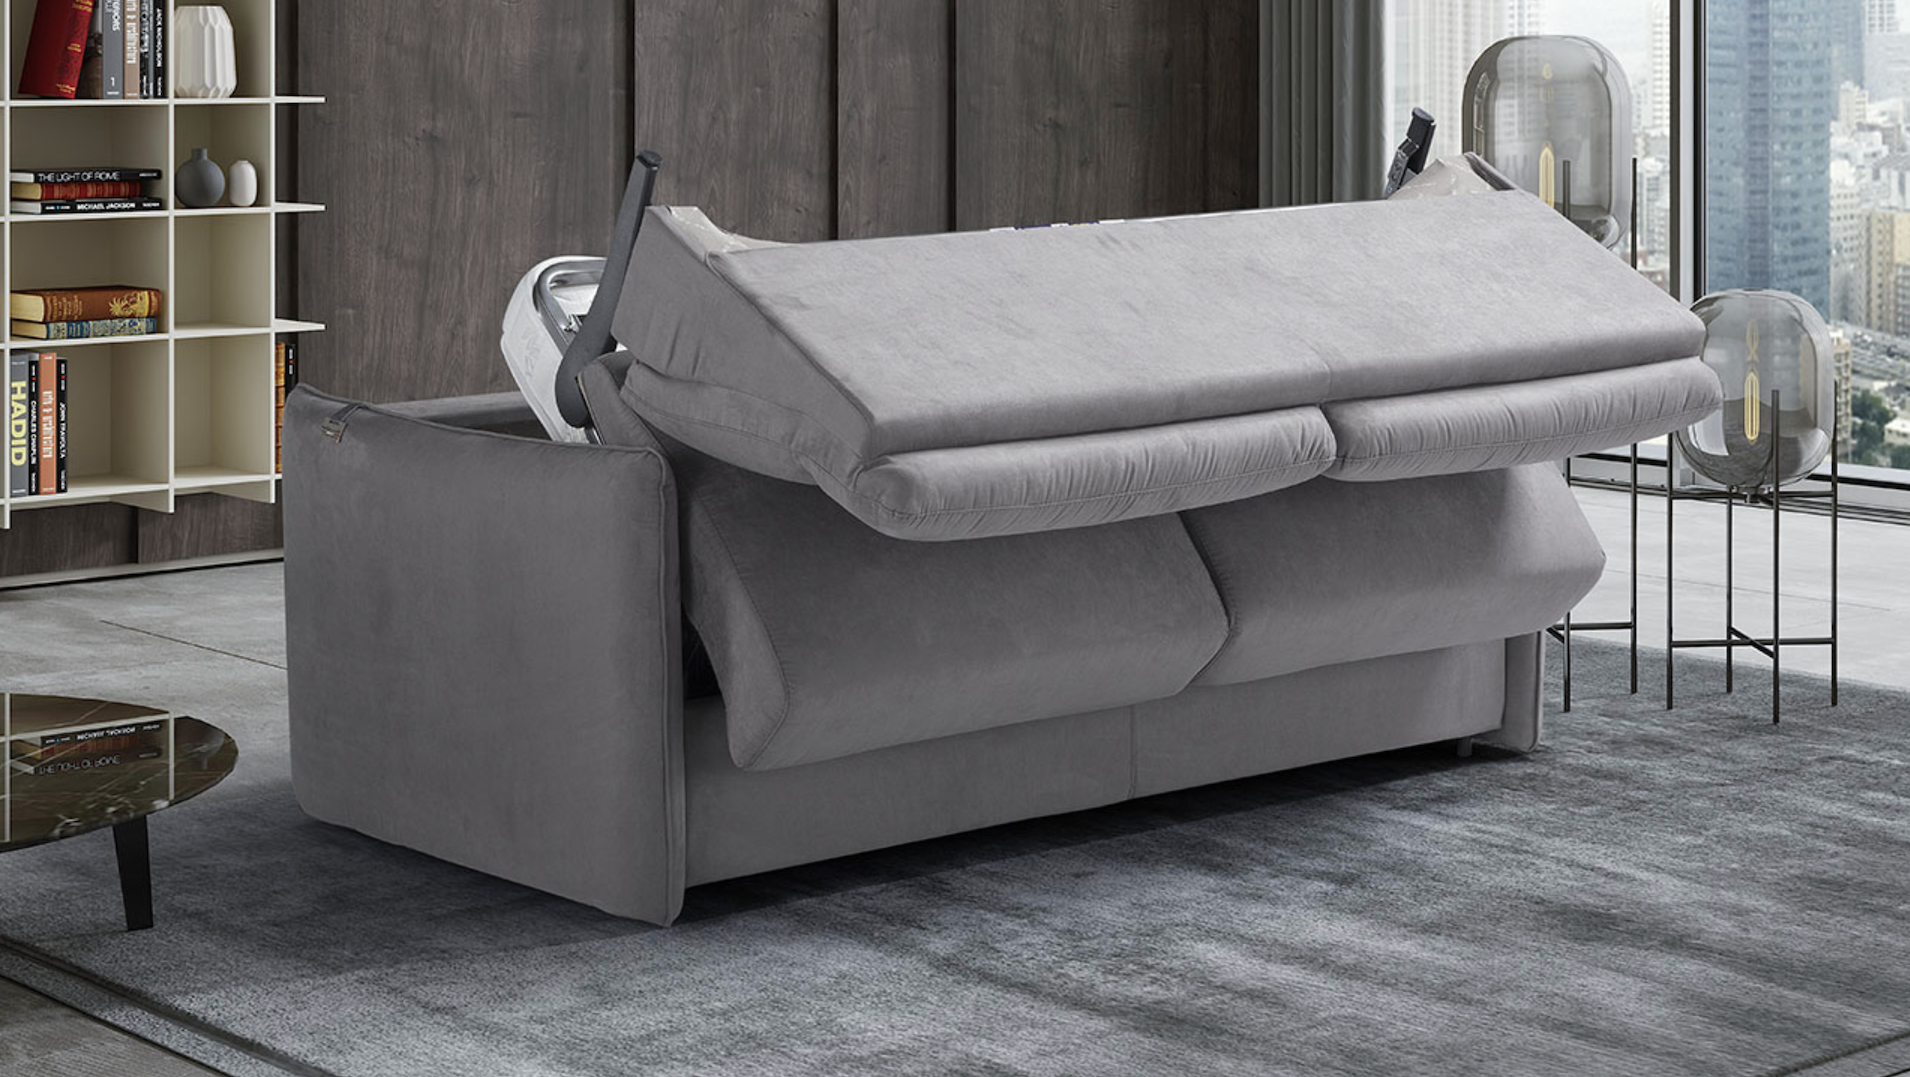 AIMEE Italian Crafted 3 Seat Sofa Bed in PLAZA GREY. RRP £1979 - Image 5 of 5